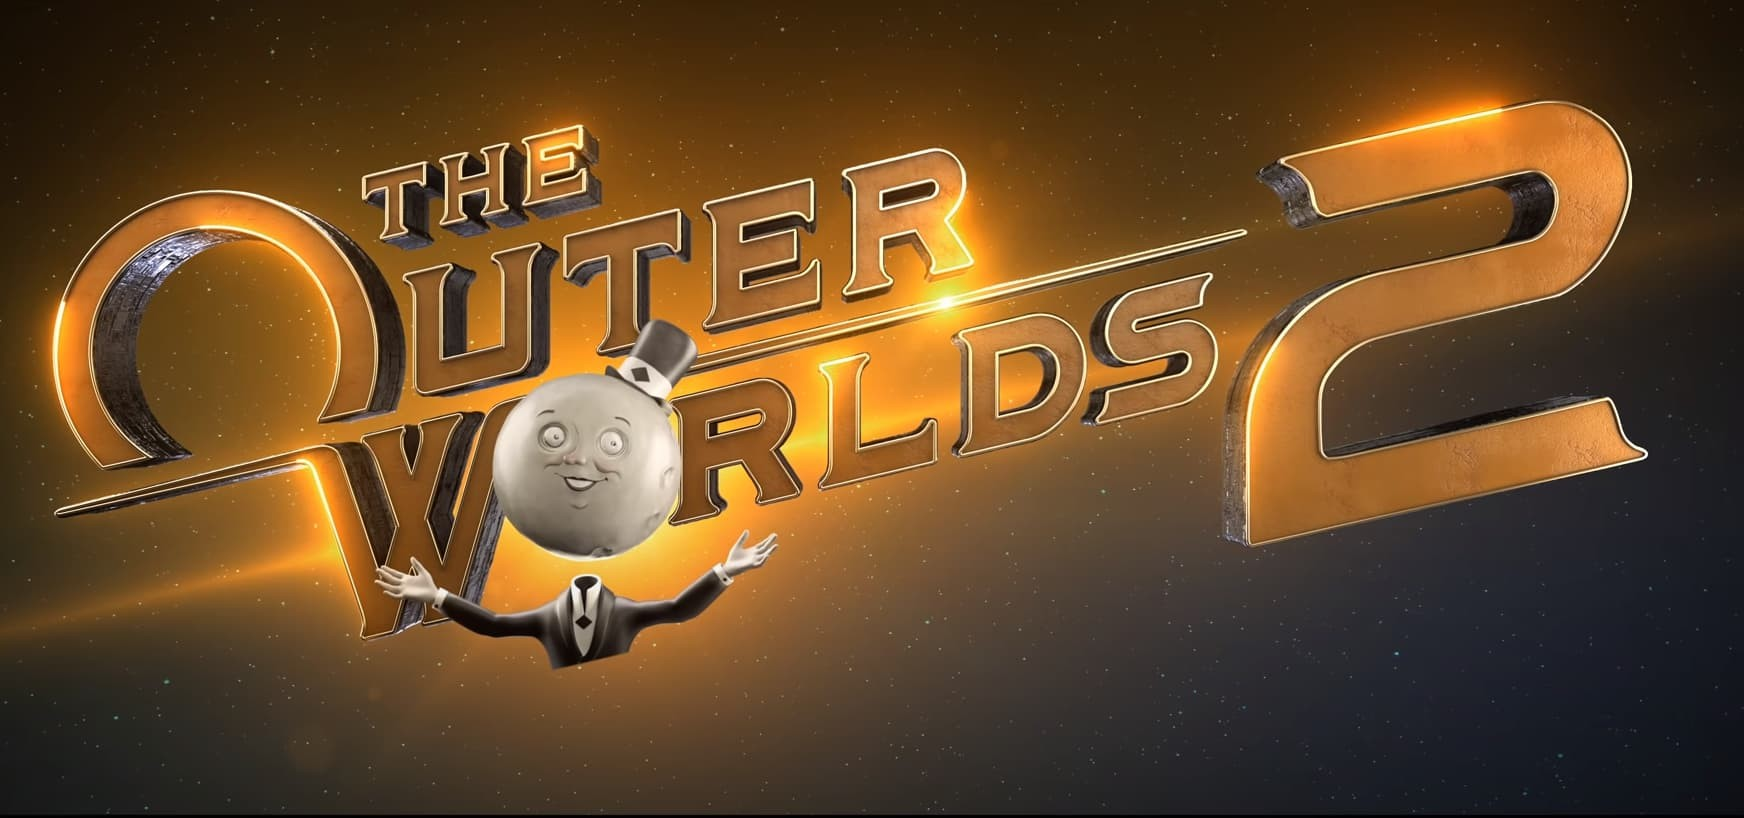 The Outer Worlds 2 titolo dal trailer